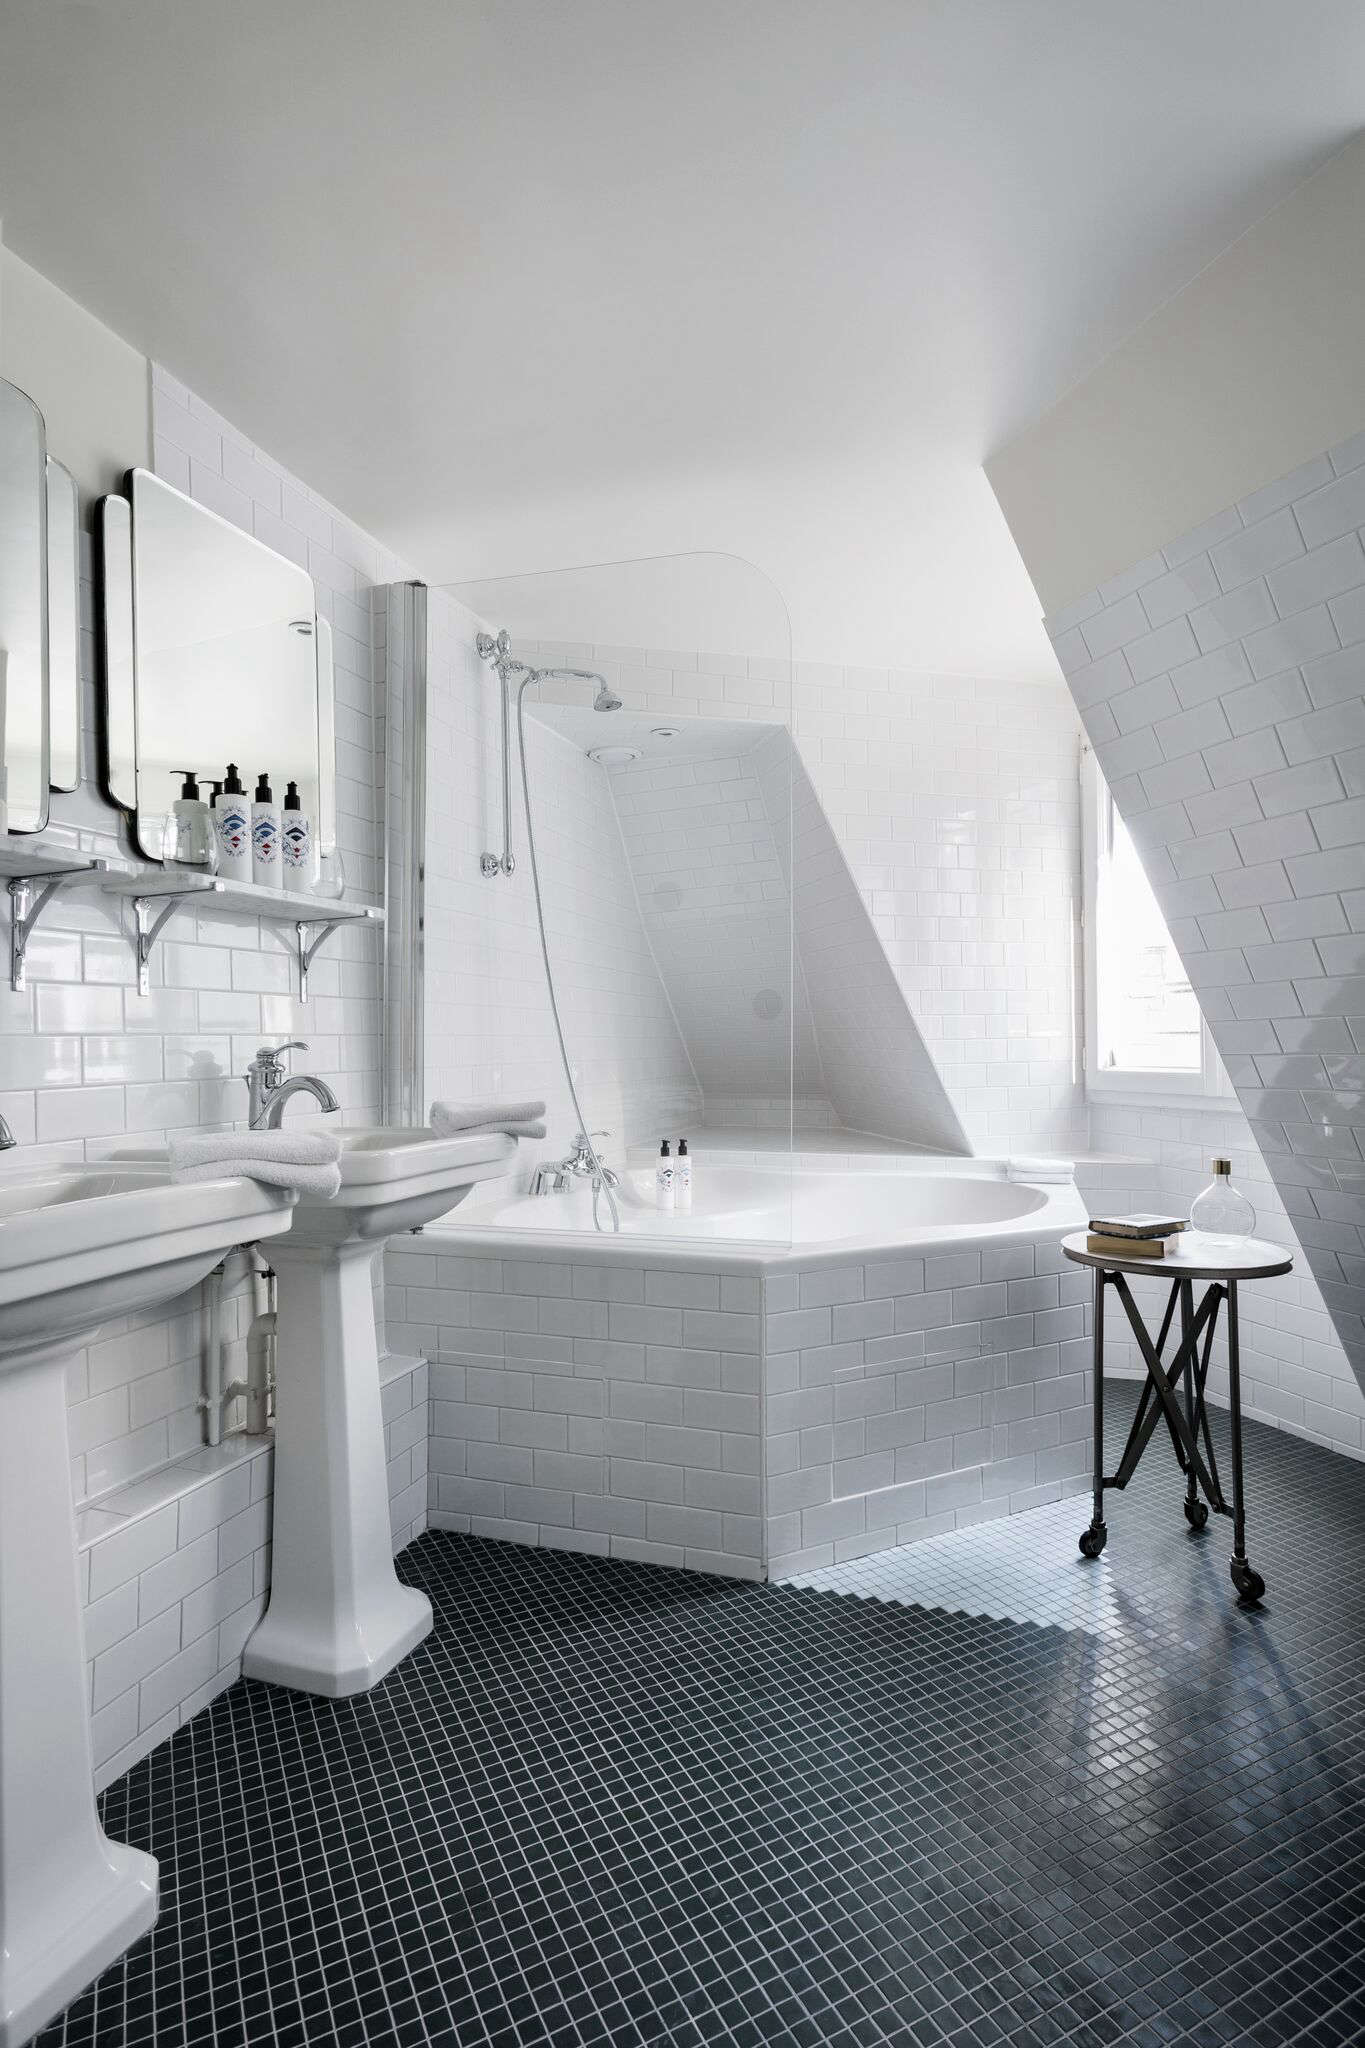 Tucked under the mansard roof on the top floor, a corner tub with a view.